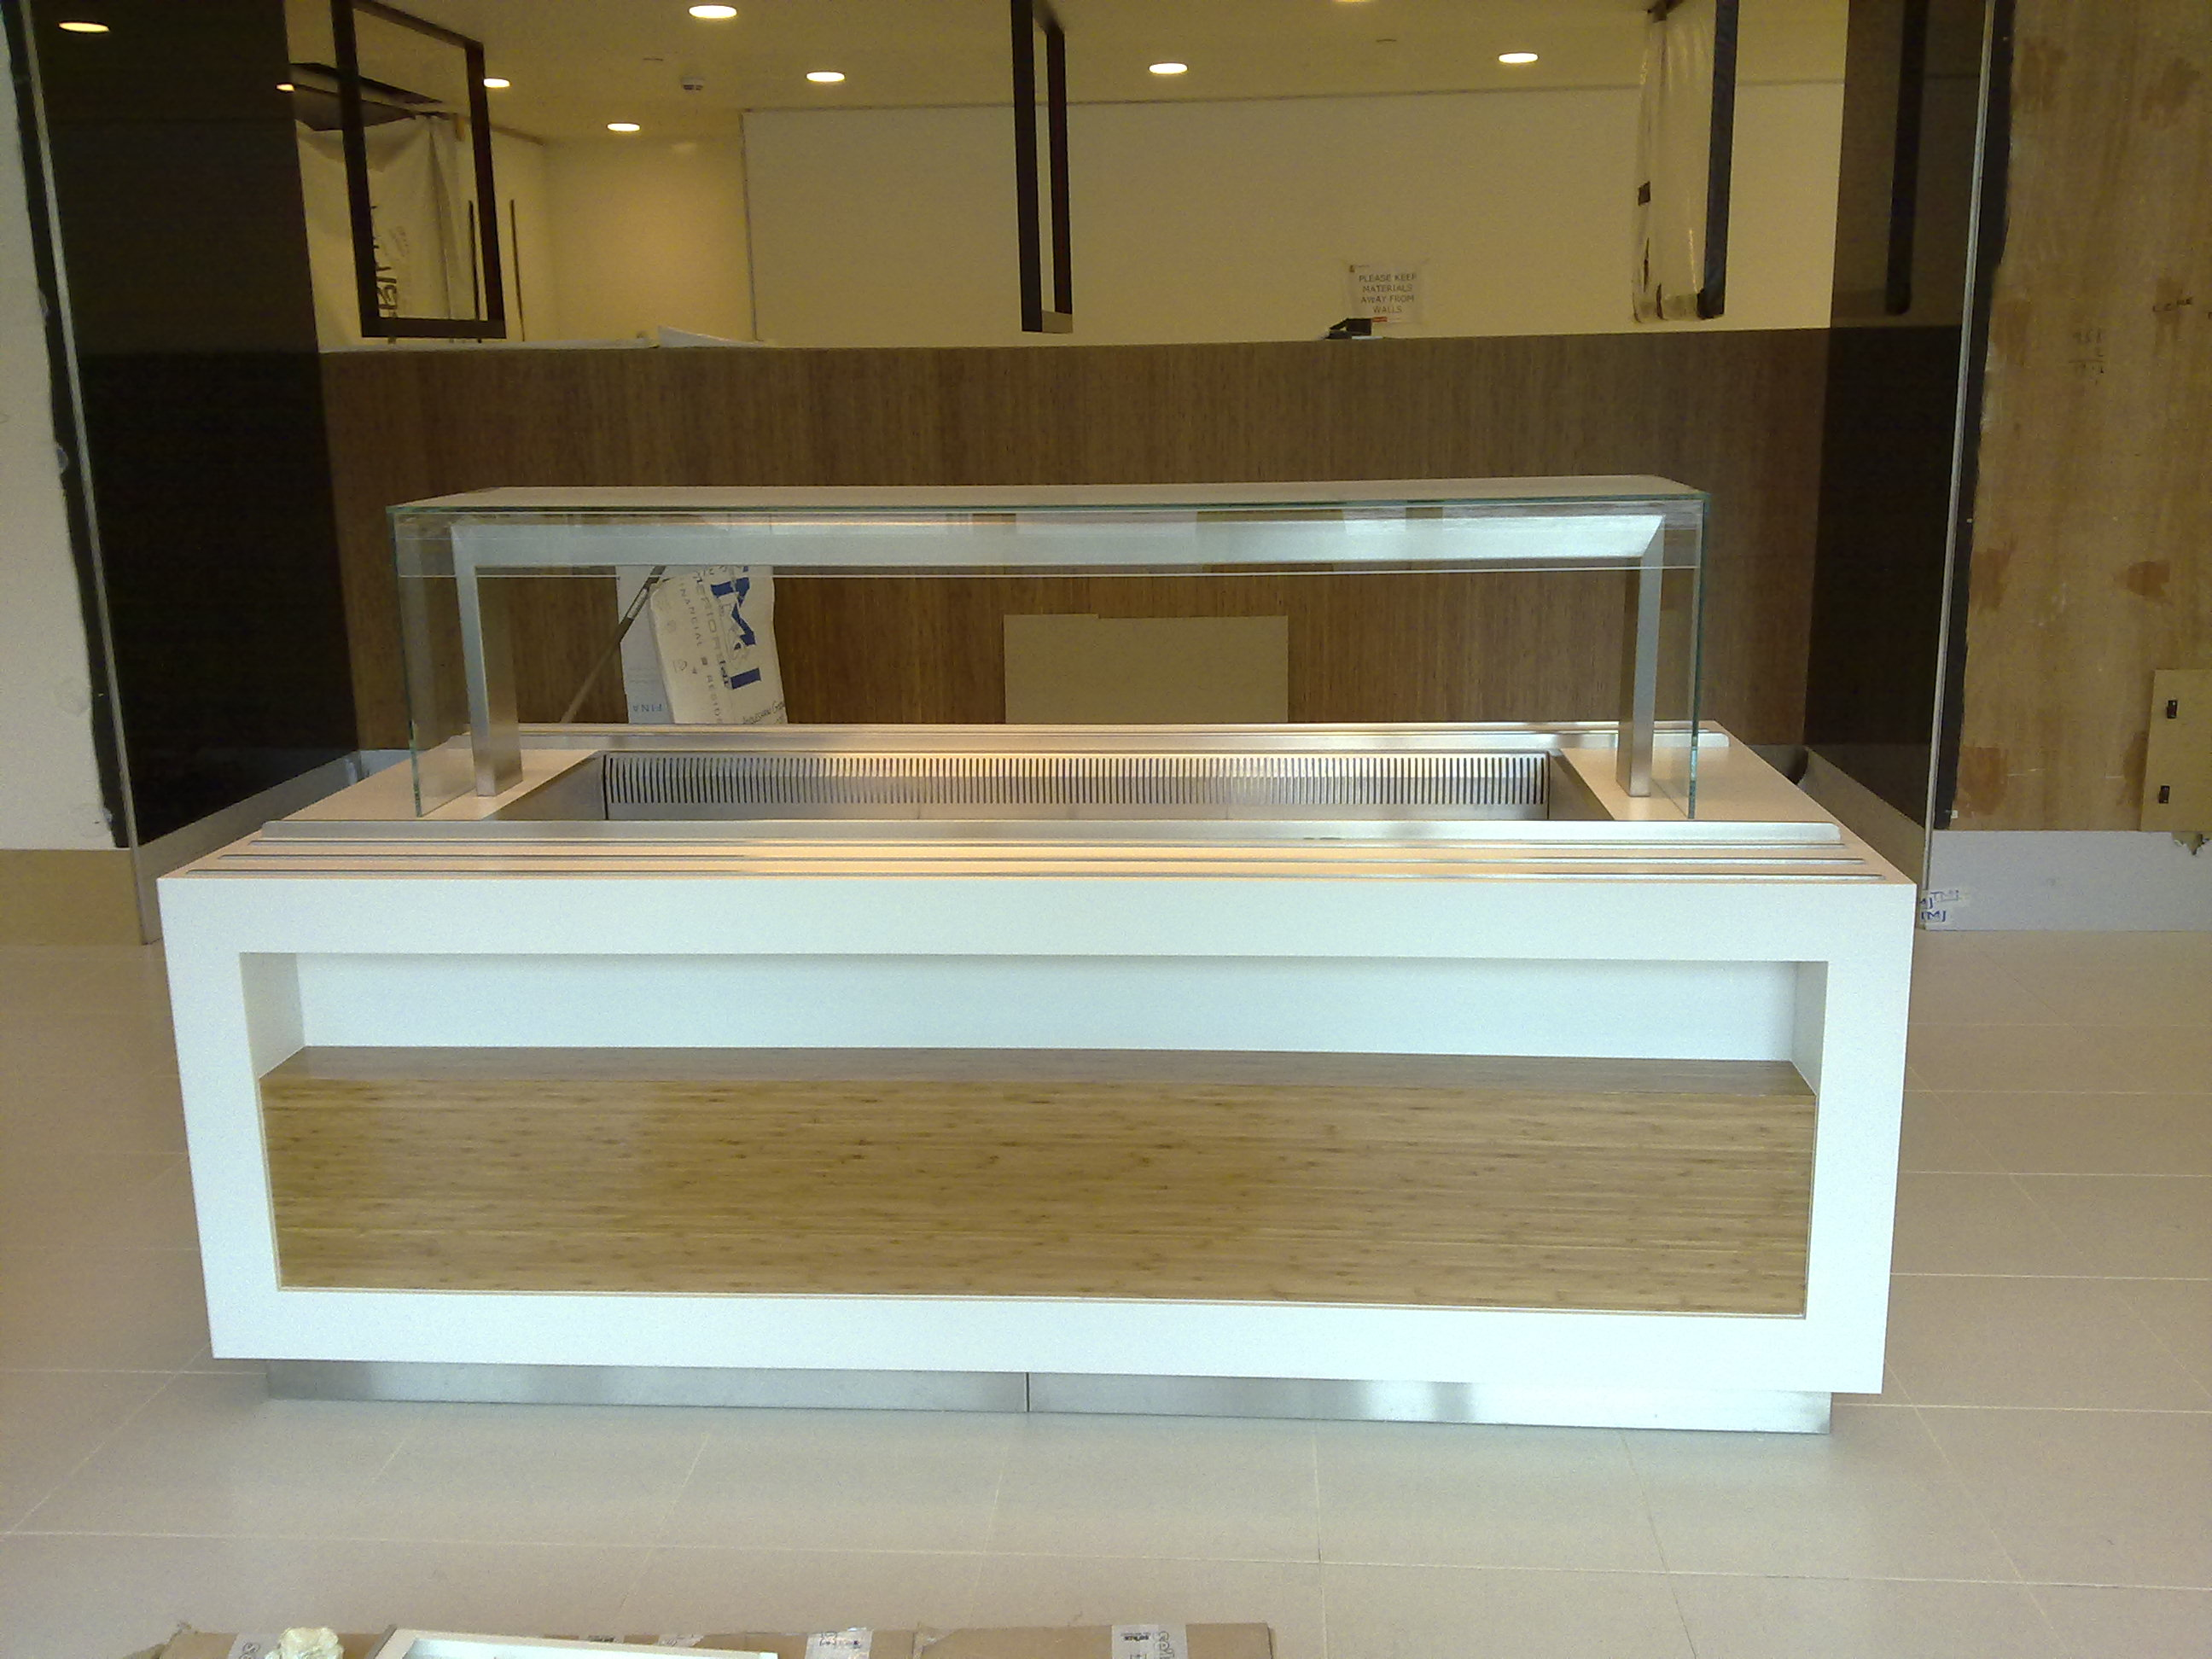 (Addleshaw) Law firm  – London  Glacier white corian and stainless steel tray runners throughout with bamboo veneer impulse displays